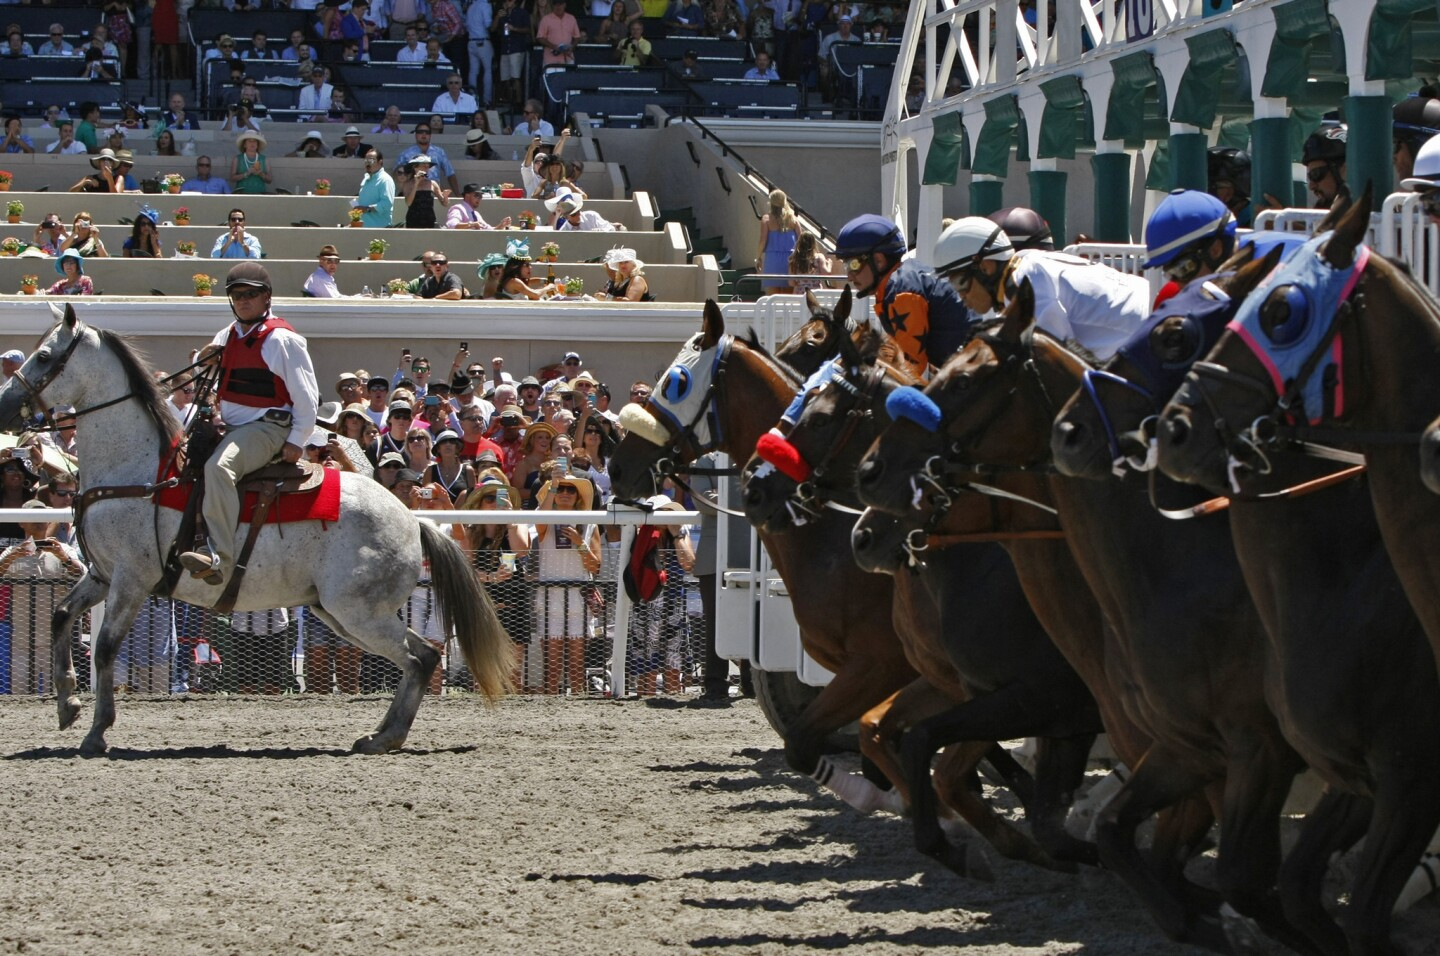 Horses break from the gate for the first race of the 2014 season at the Del Mar racetrack.